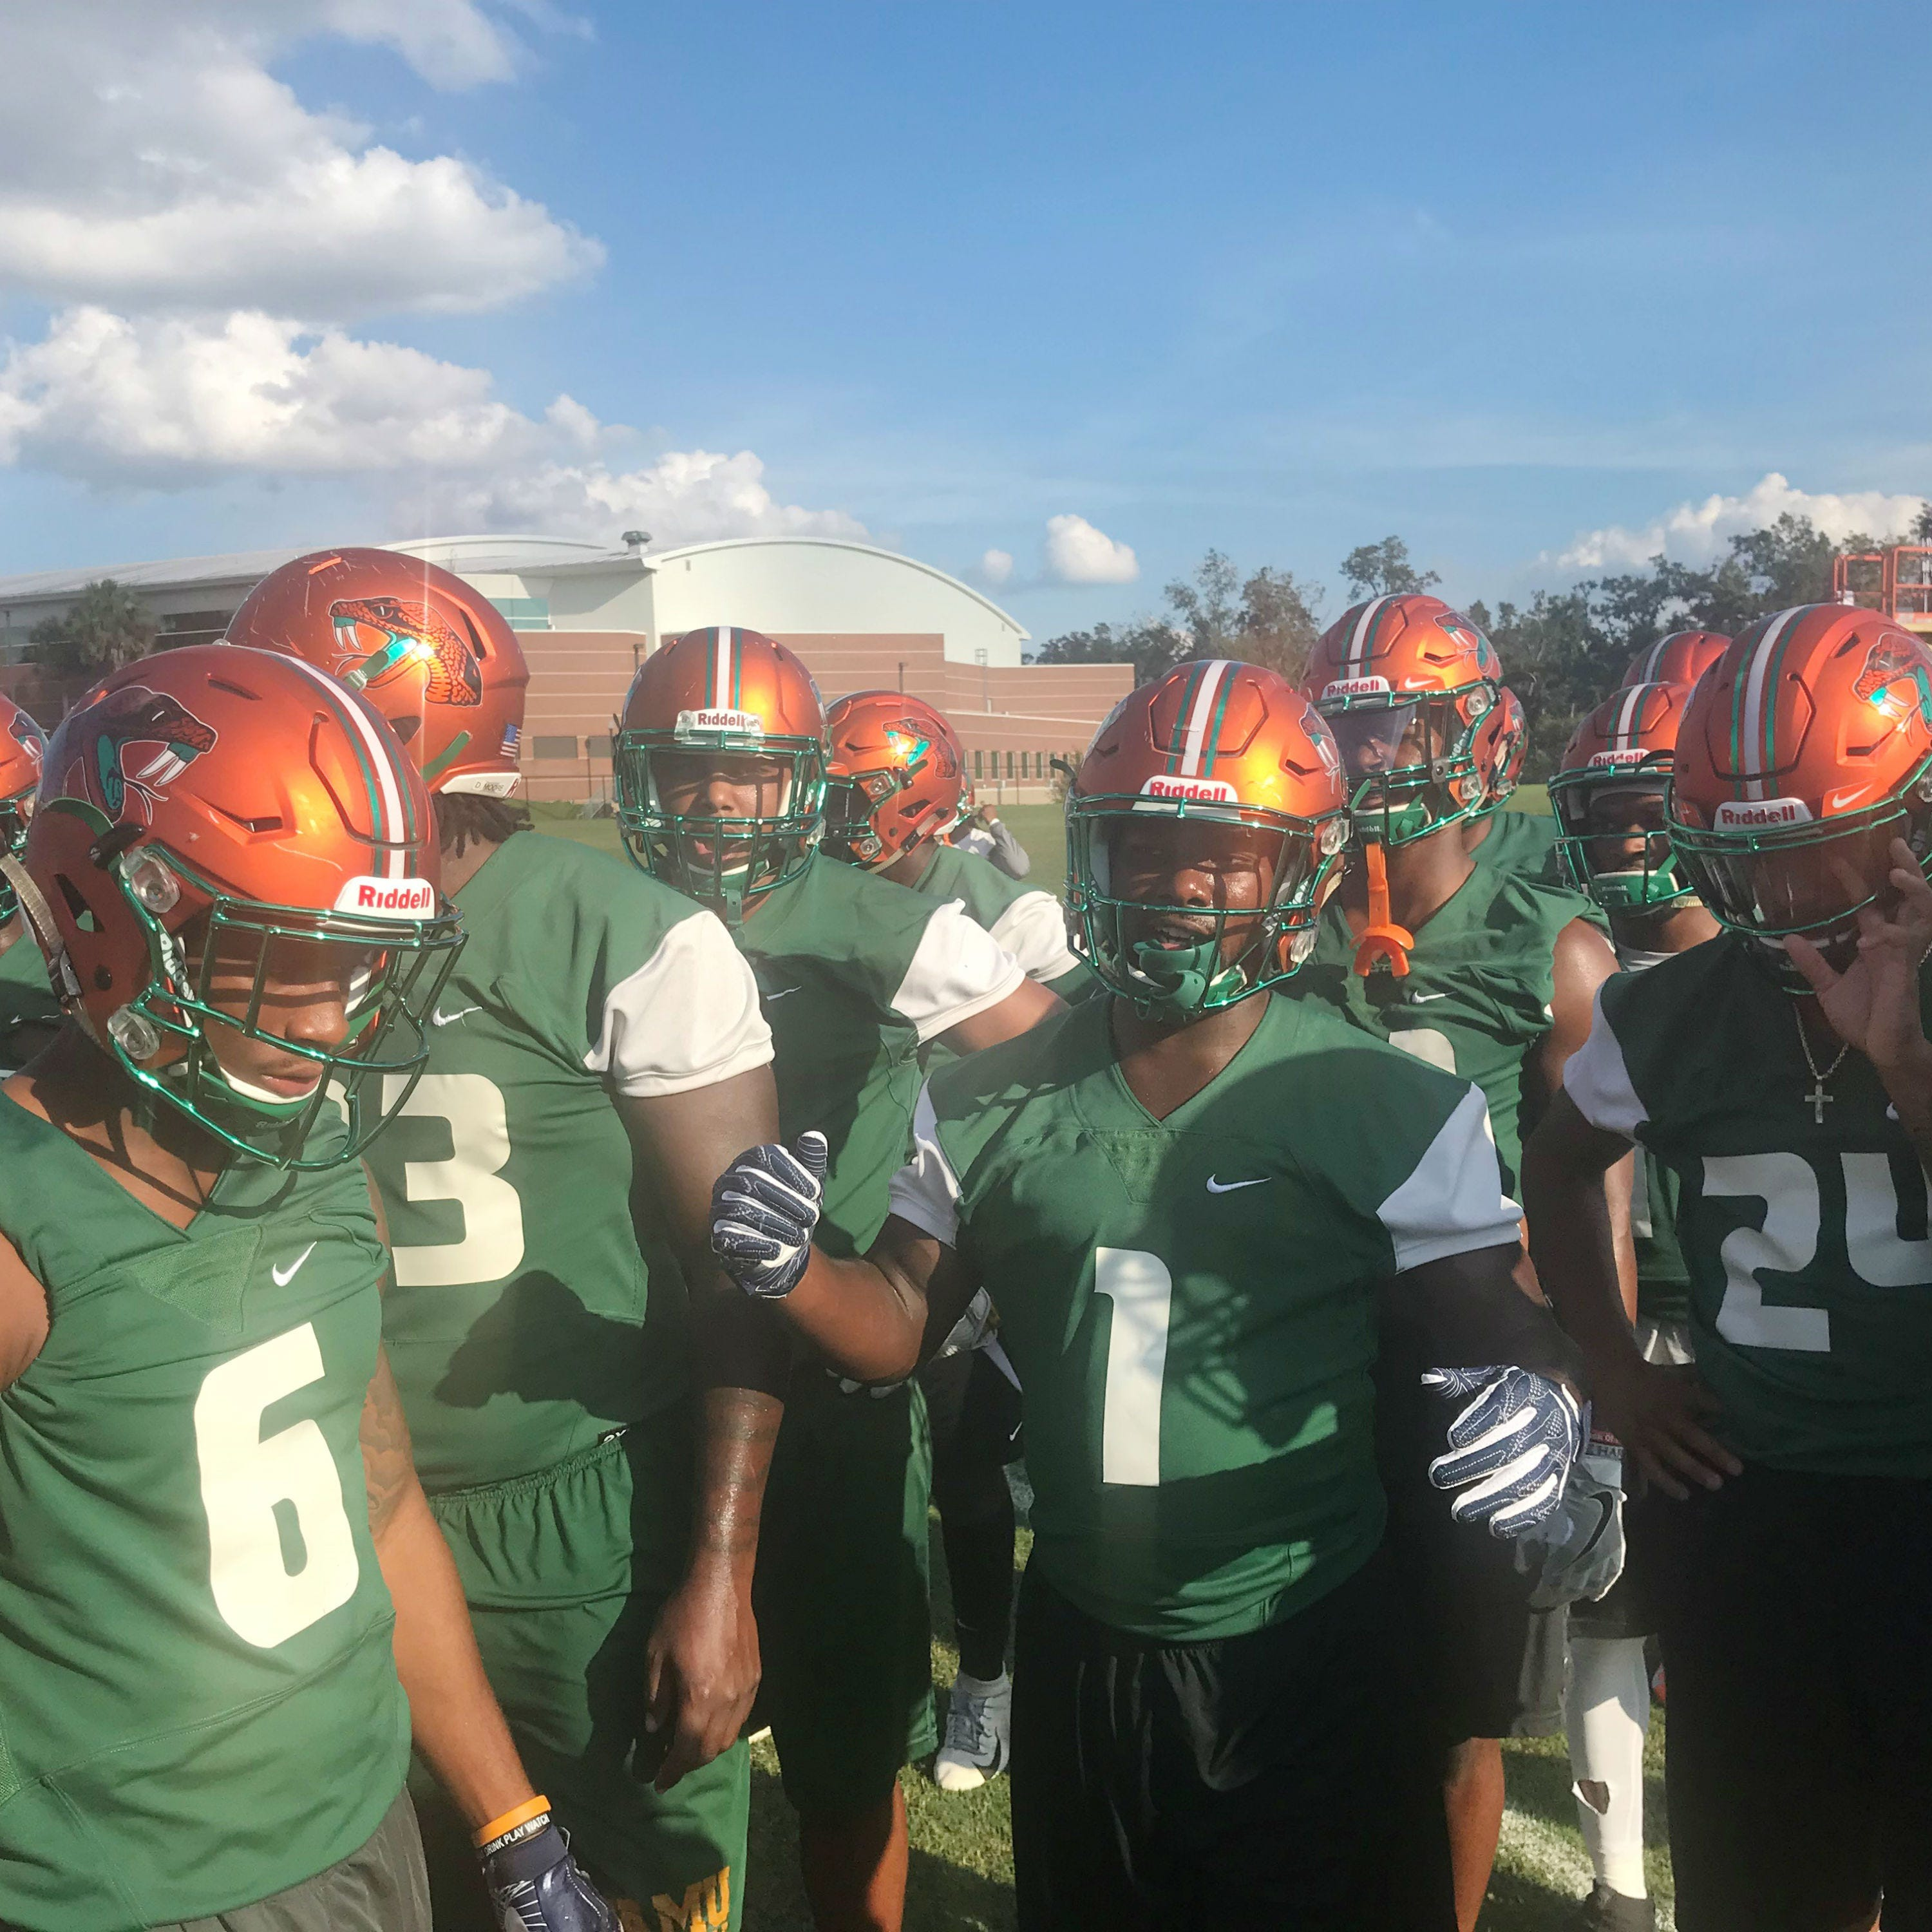 FAMU resumes practice after Hurricane Michael